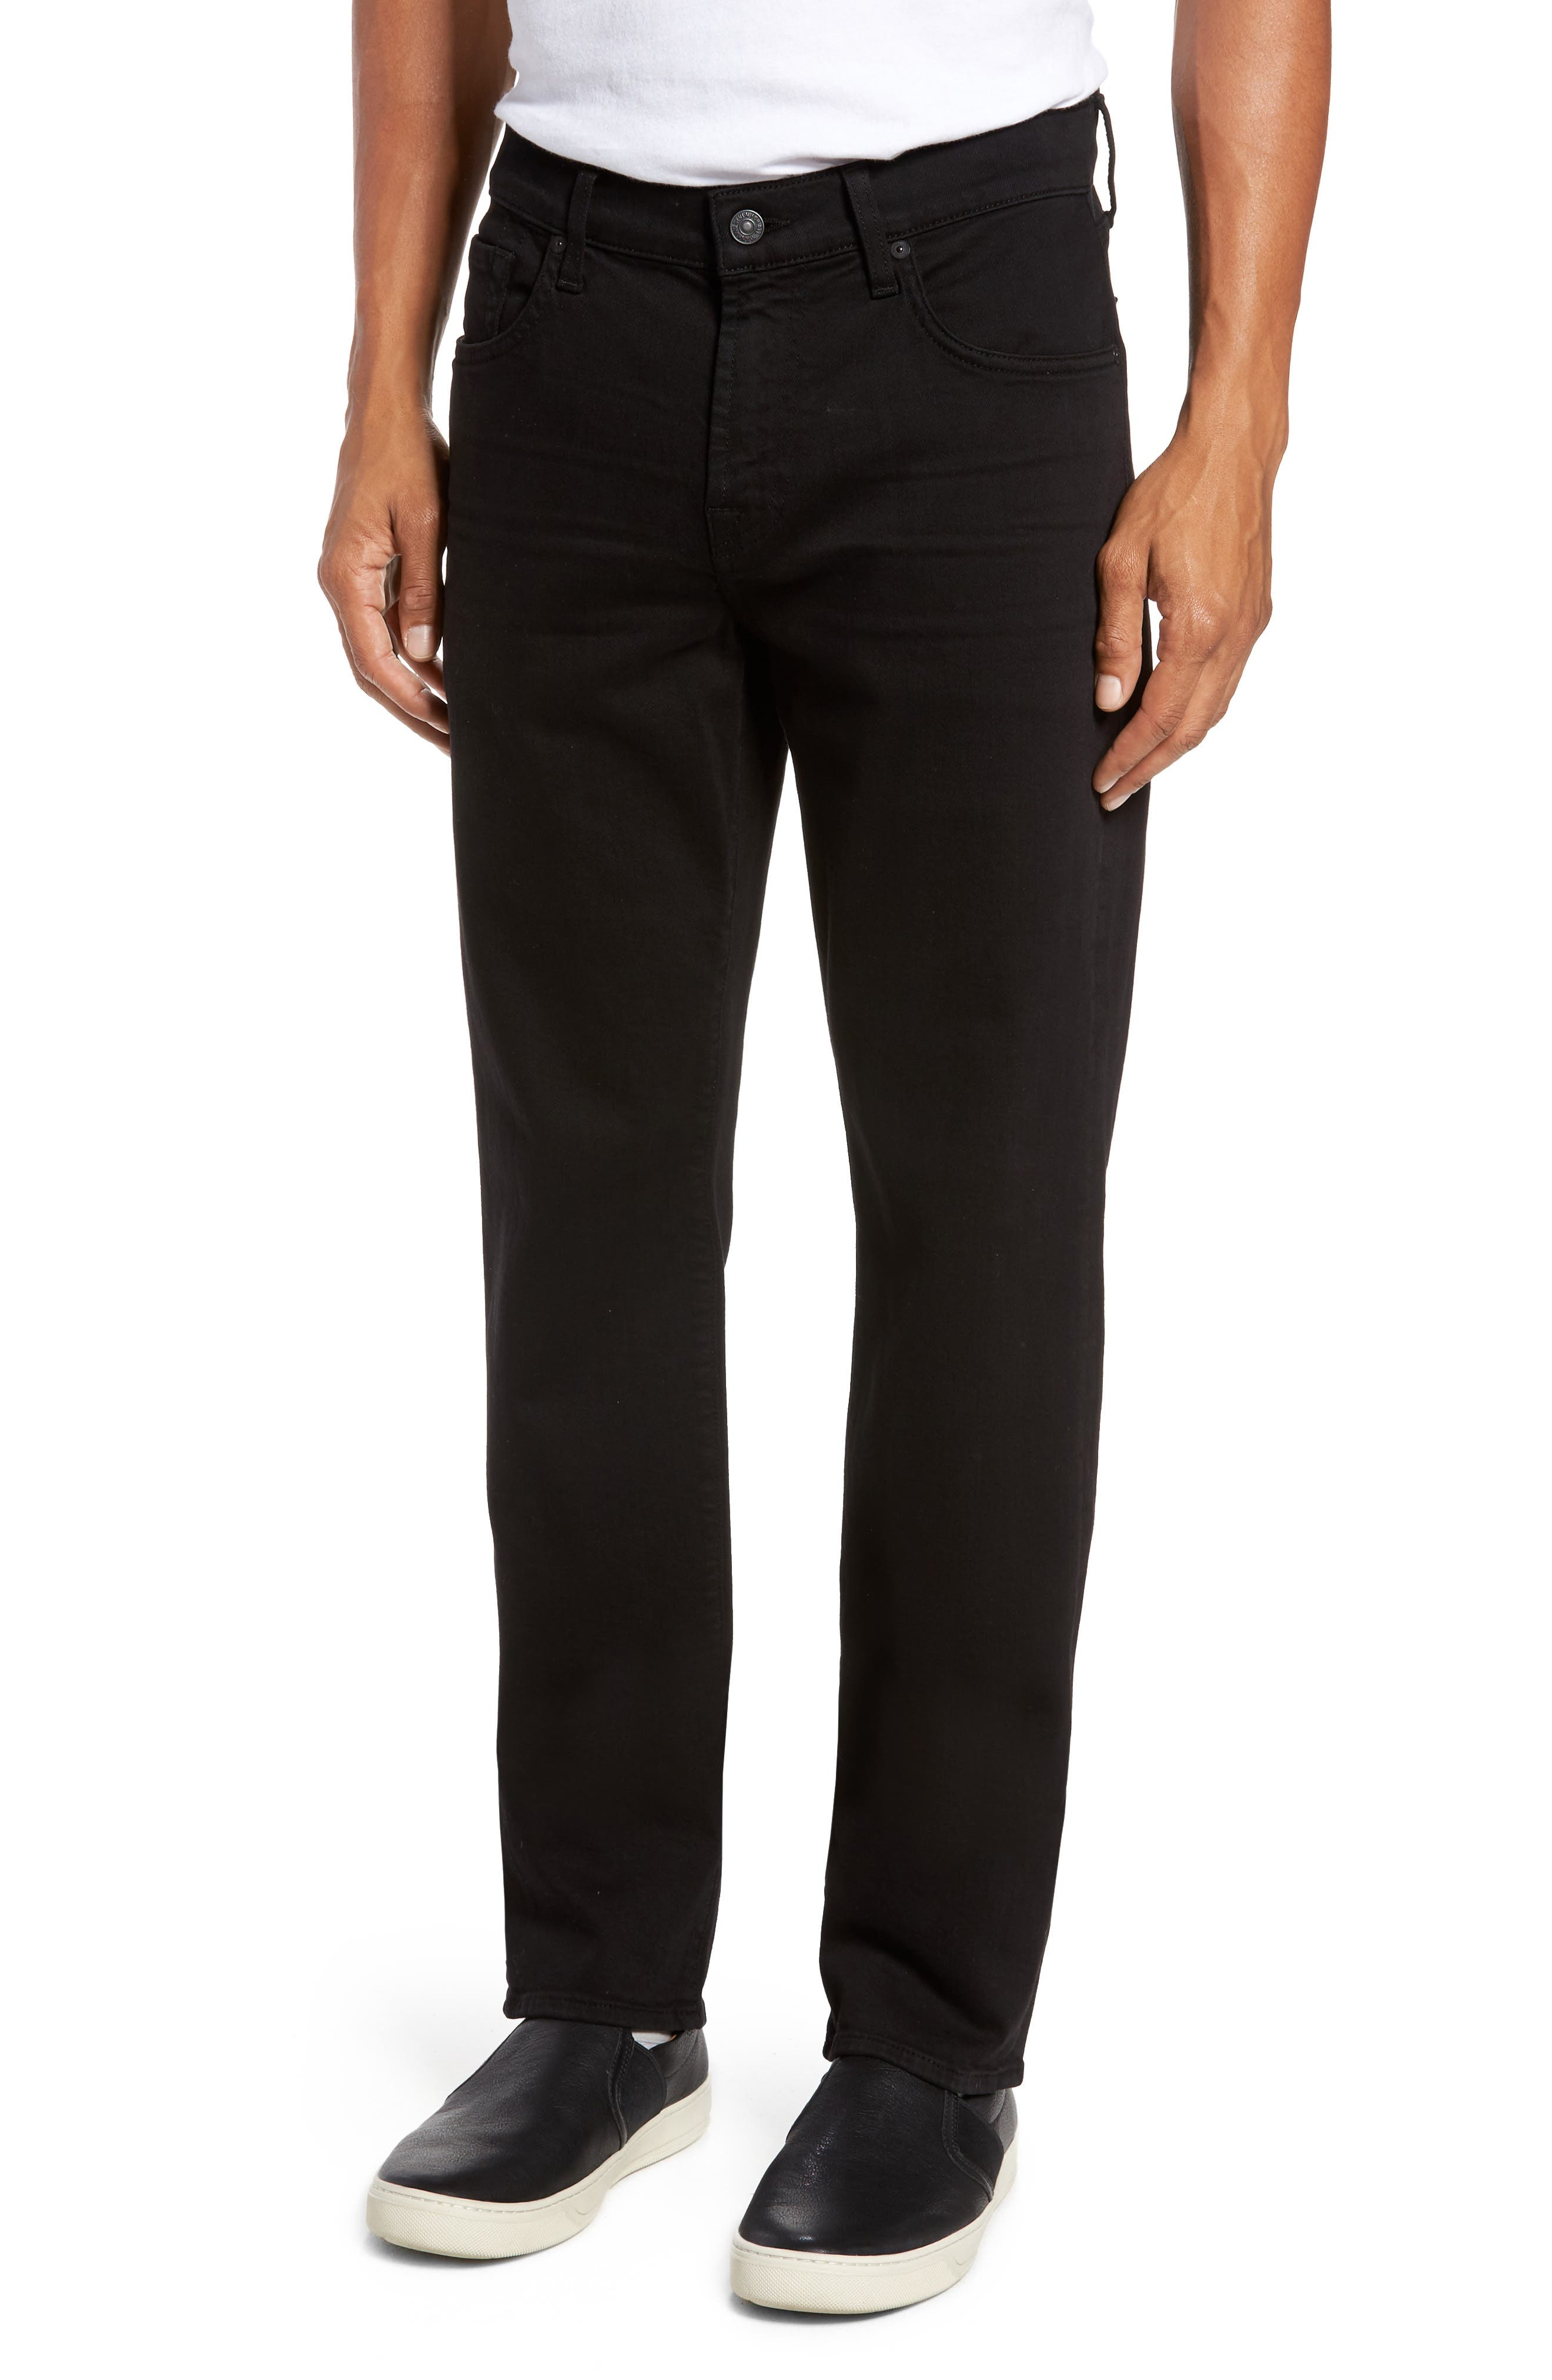 Luxe Performance - Slimmy Slim Fit Jeans,                             Main thumbnail 1, color,                             Annex Black